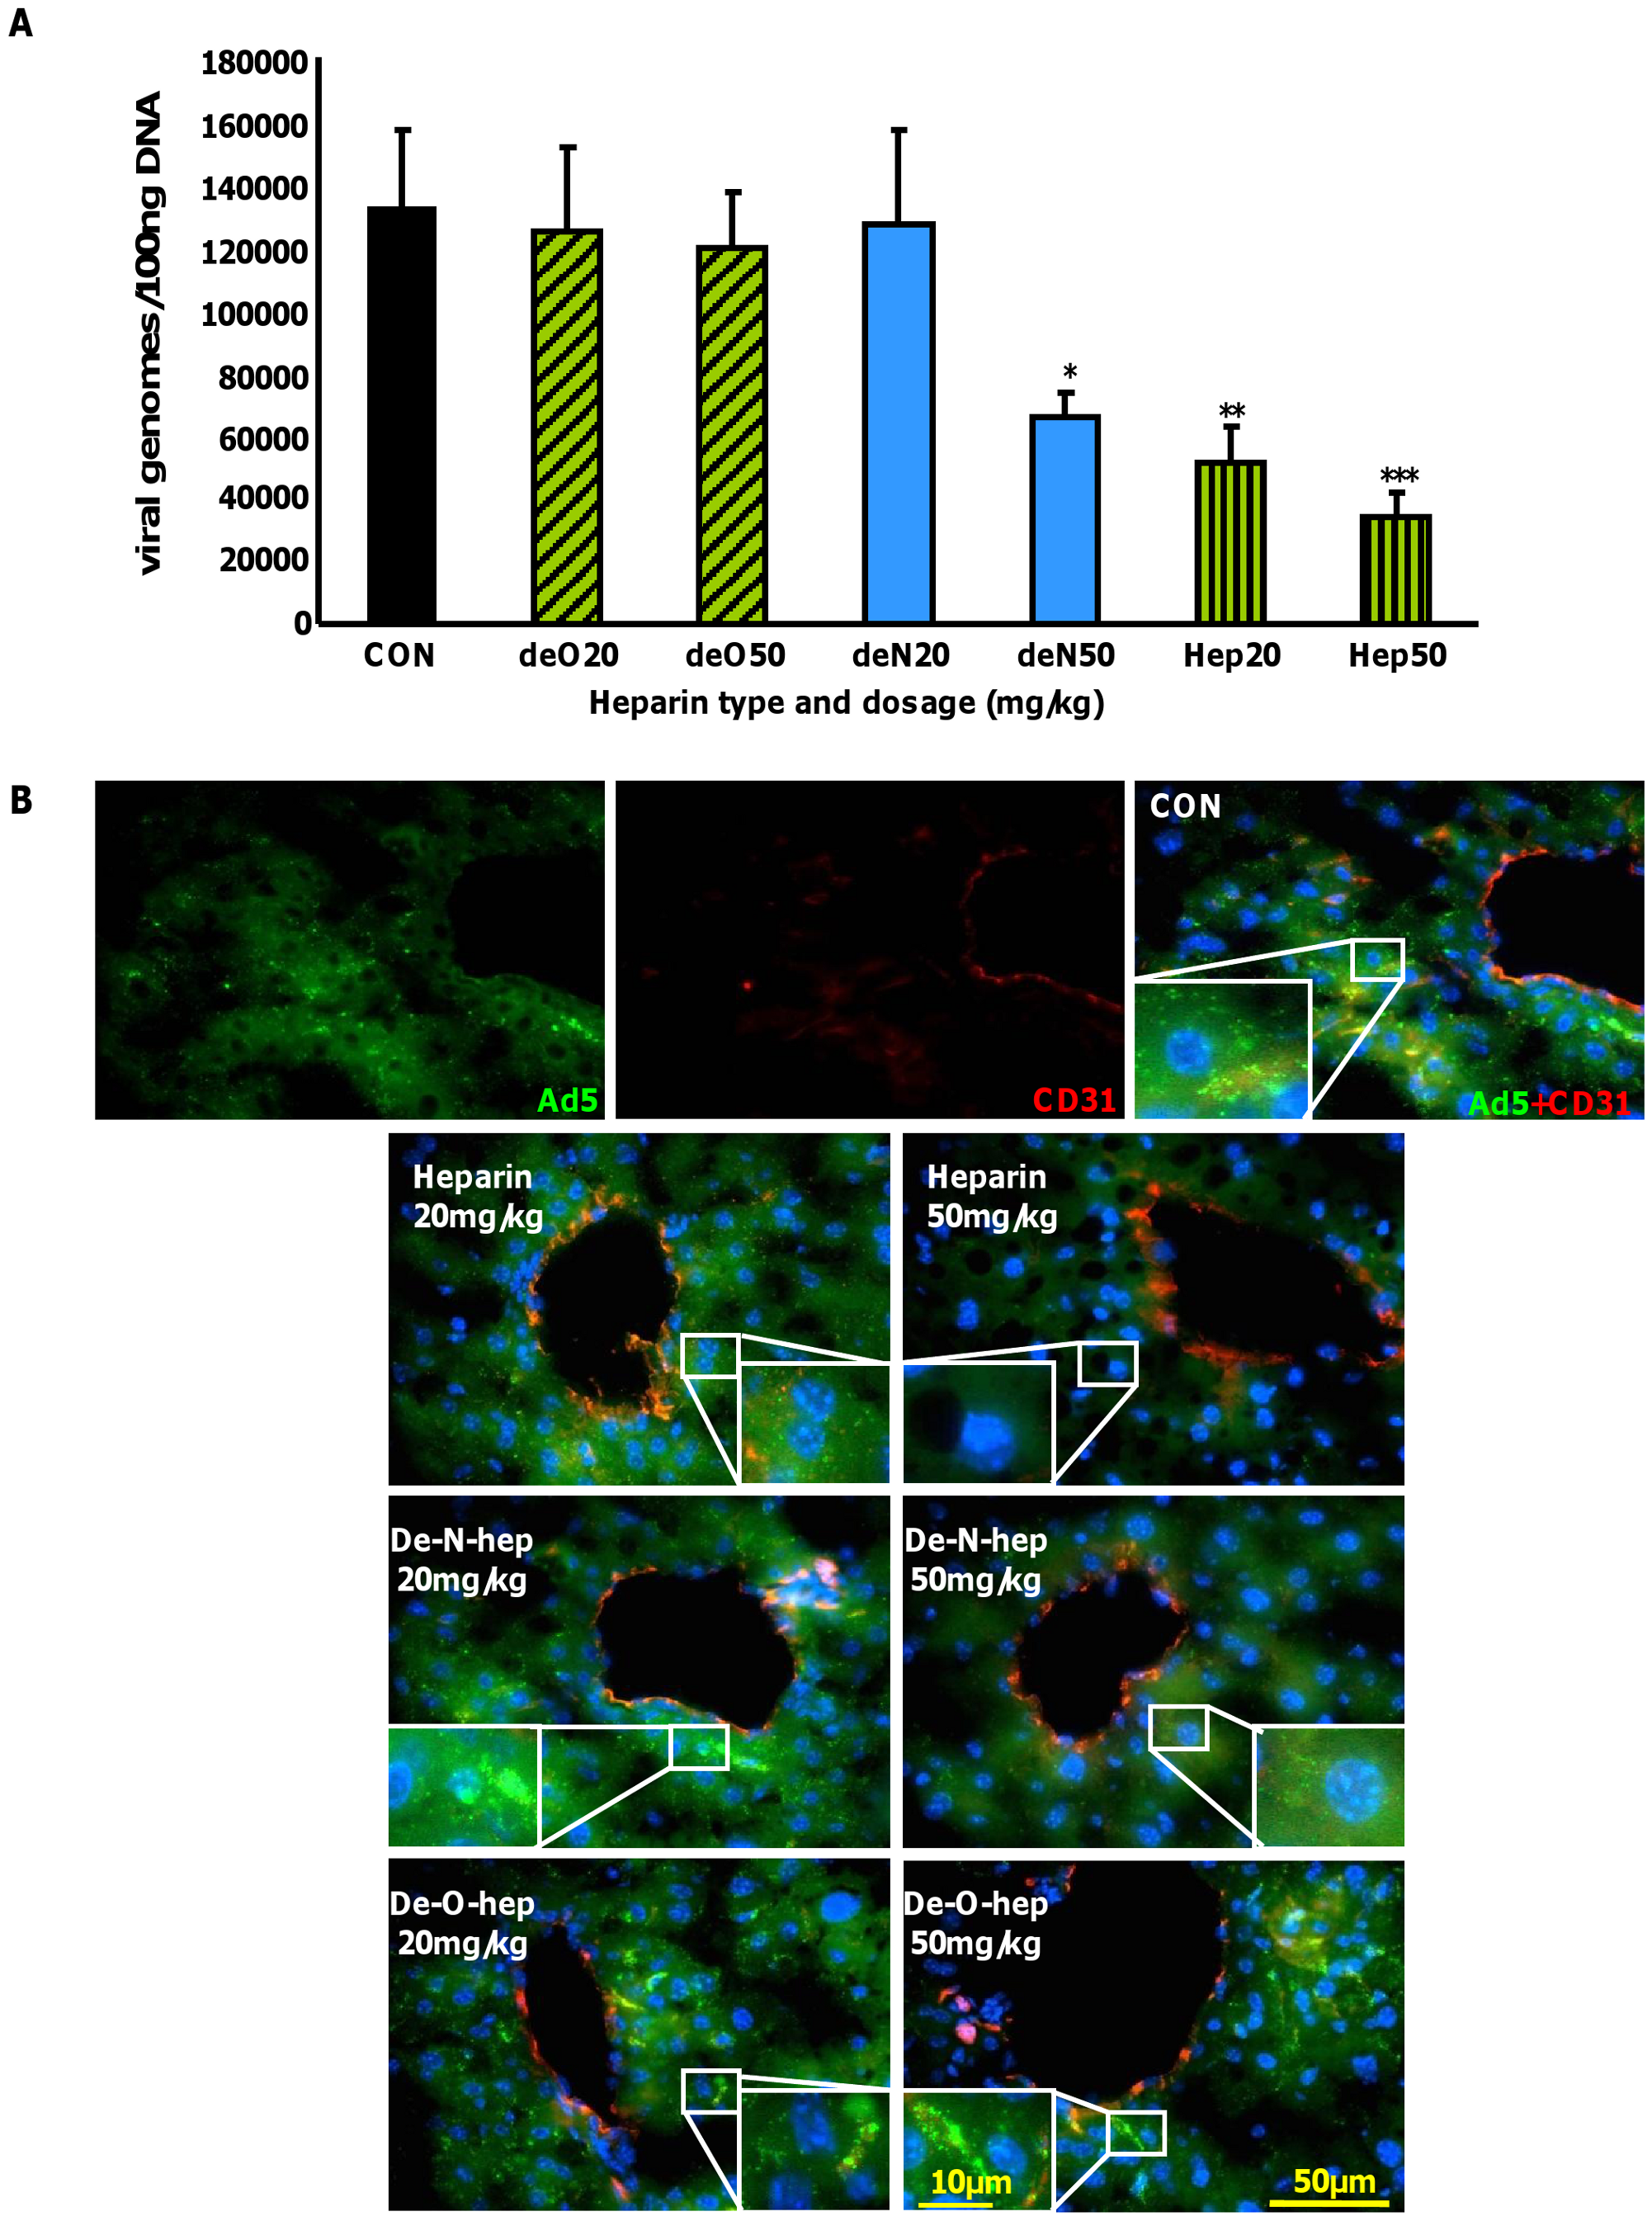 Effect of modified heparins on Ad5 liver accumulation.